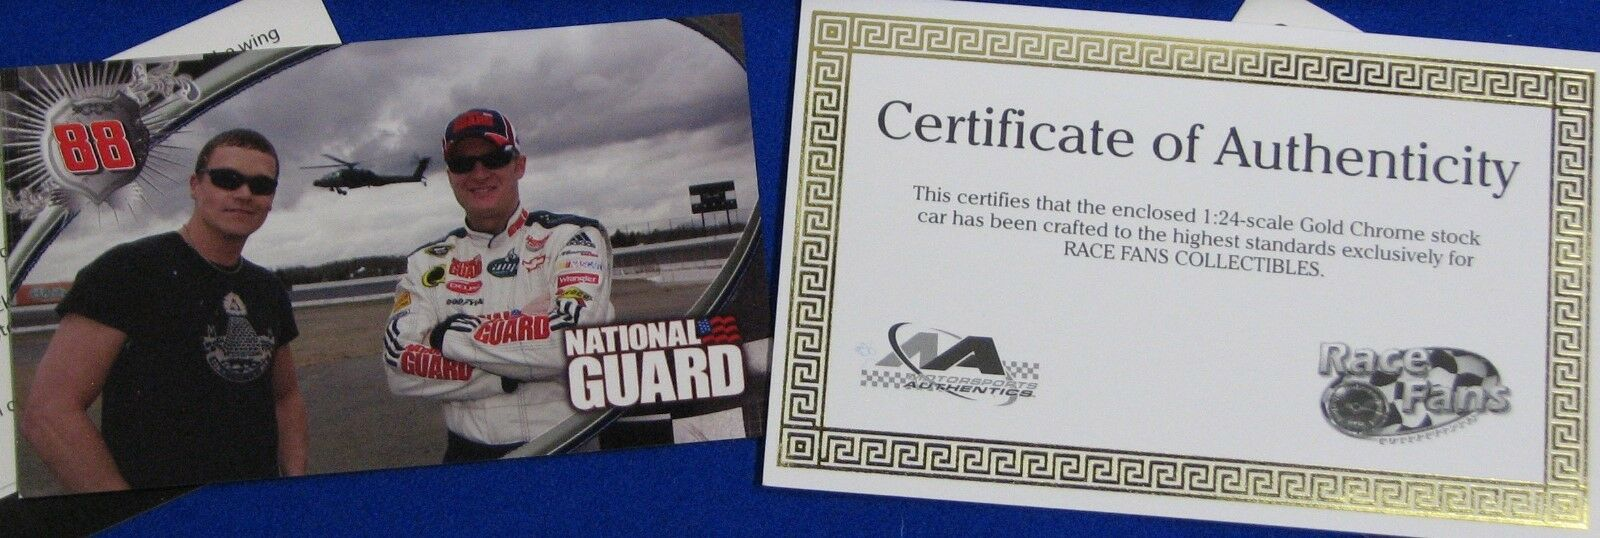 Dale Earnhardt JR ;24 scale  2008 QVC SPECIAL    Citizen Soldier gold Chrome 38f693